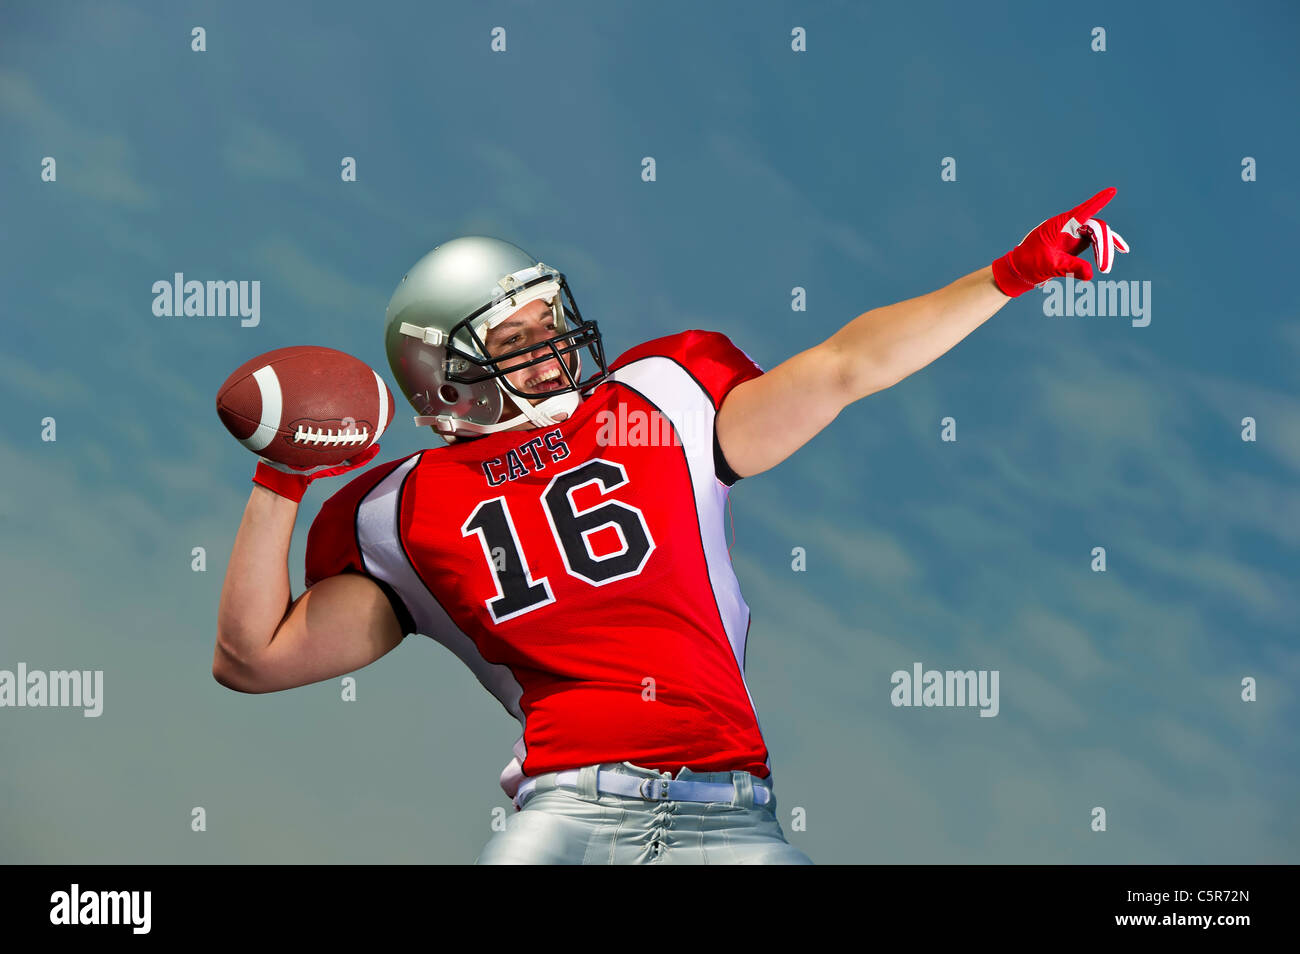 An American Football Quarterback gets ready to throw the pass - Stock Image